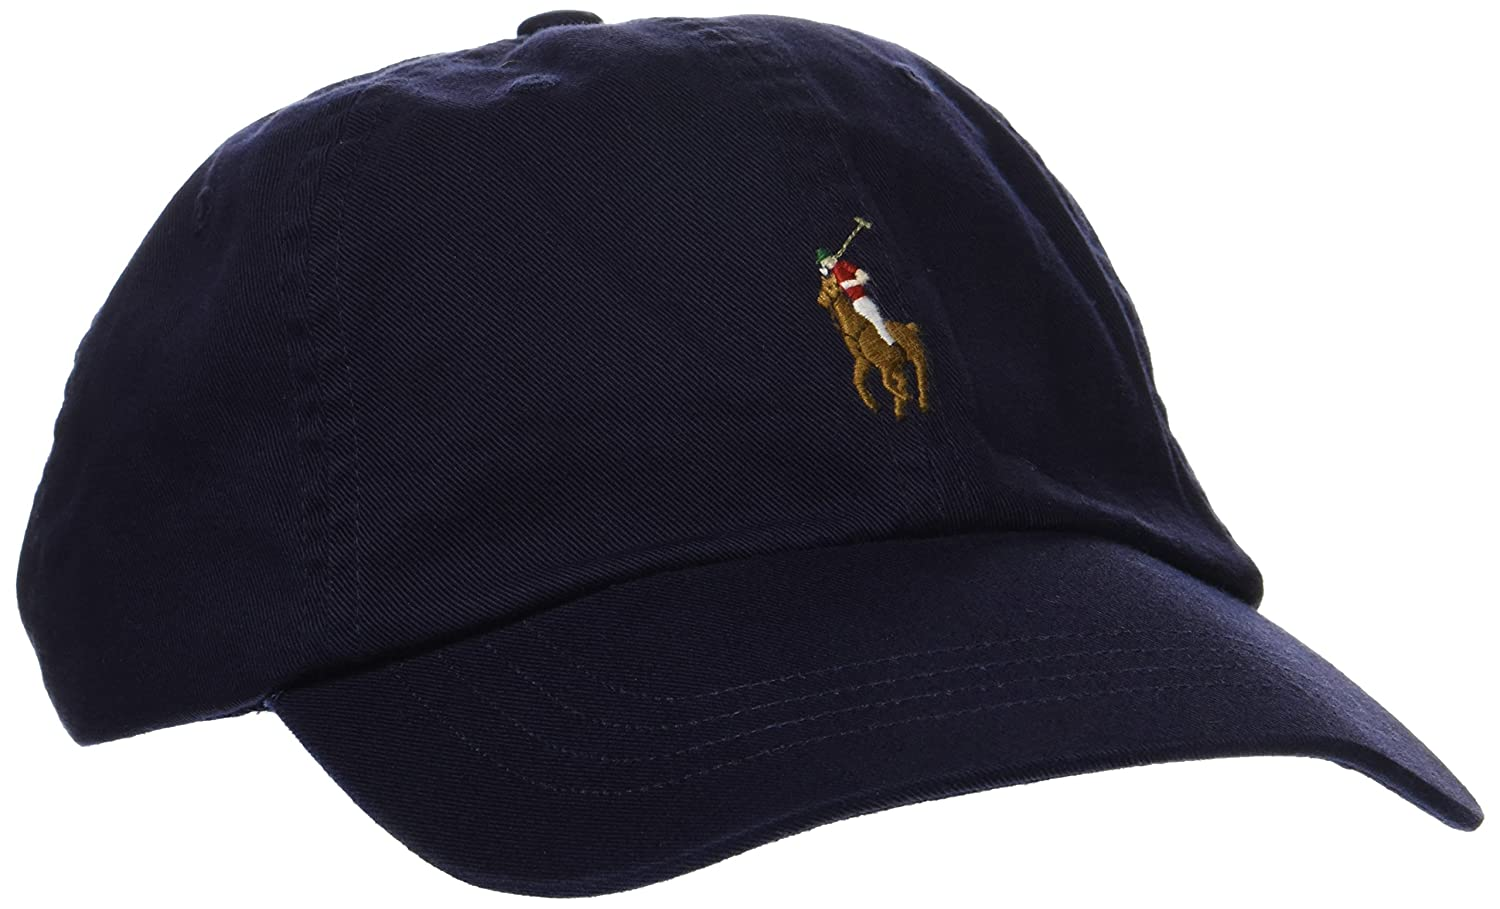 45182b46b0475 Polo Ralph Lauren Cotton Chino, Casquette de Baseball Homme Taille Unique  A81XZE27 XYE27